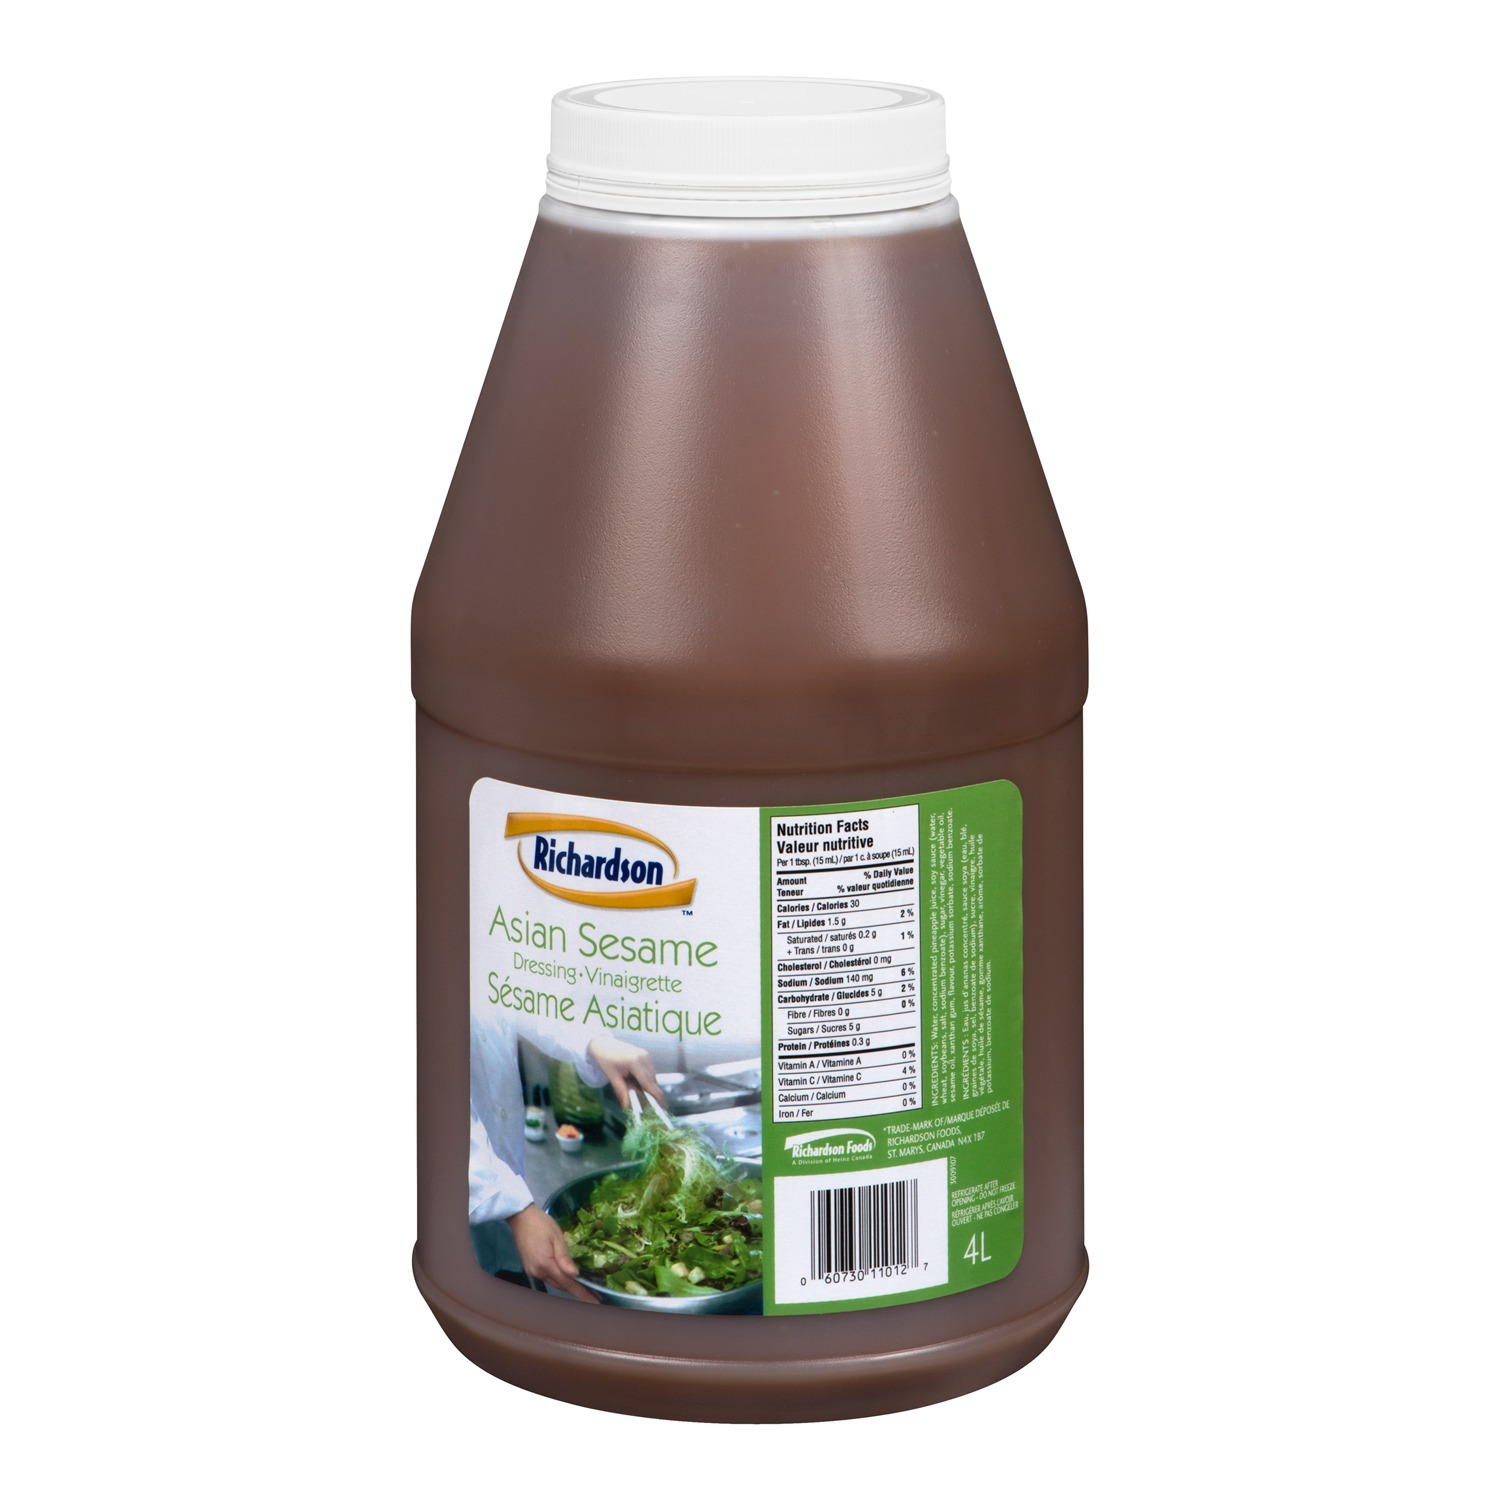 RICHARDSON vinaigrette Asiatique au sésame – 2 x 4 lb